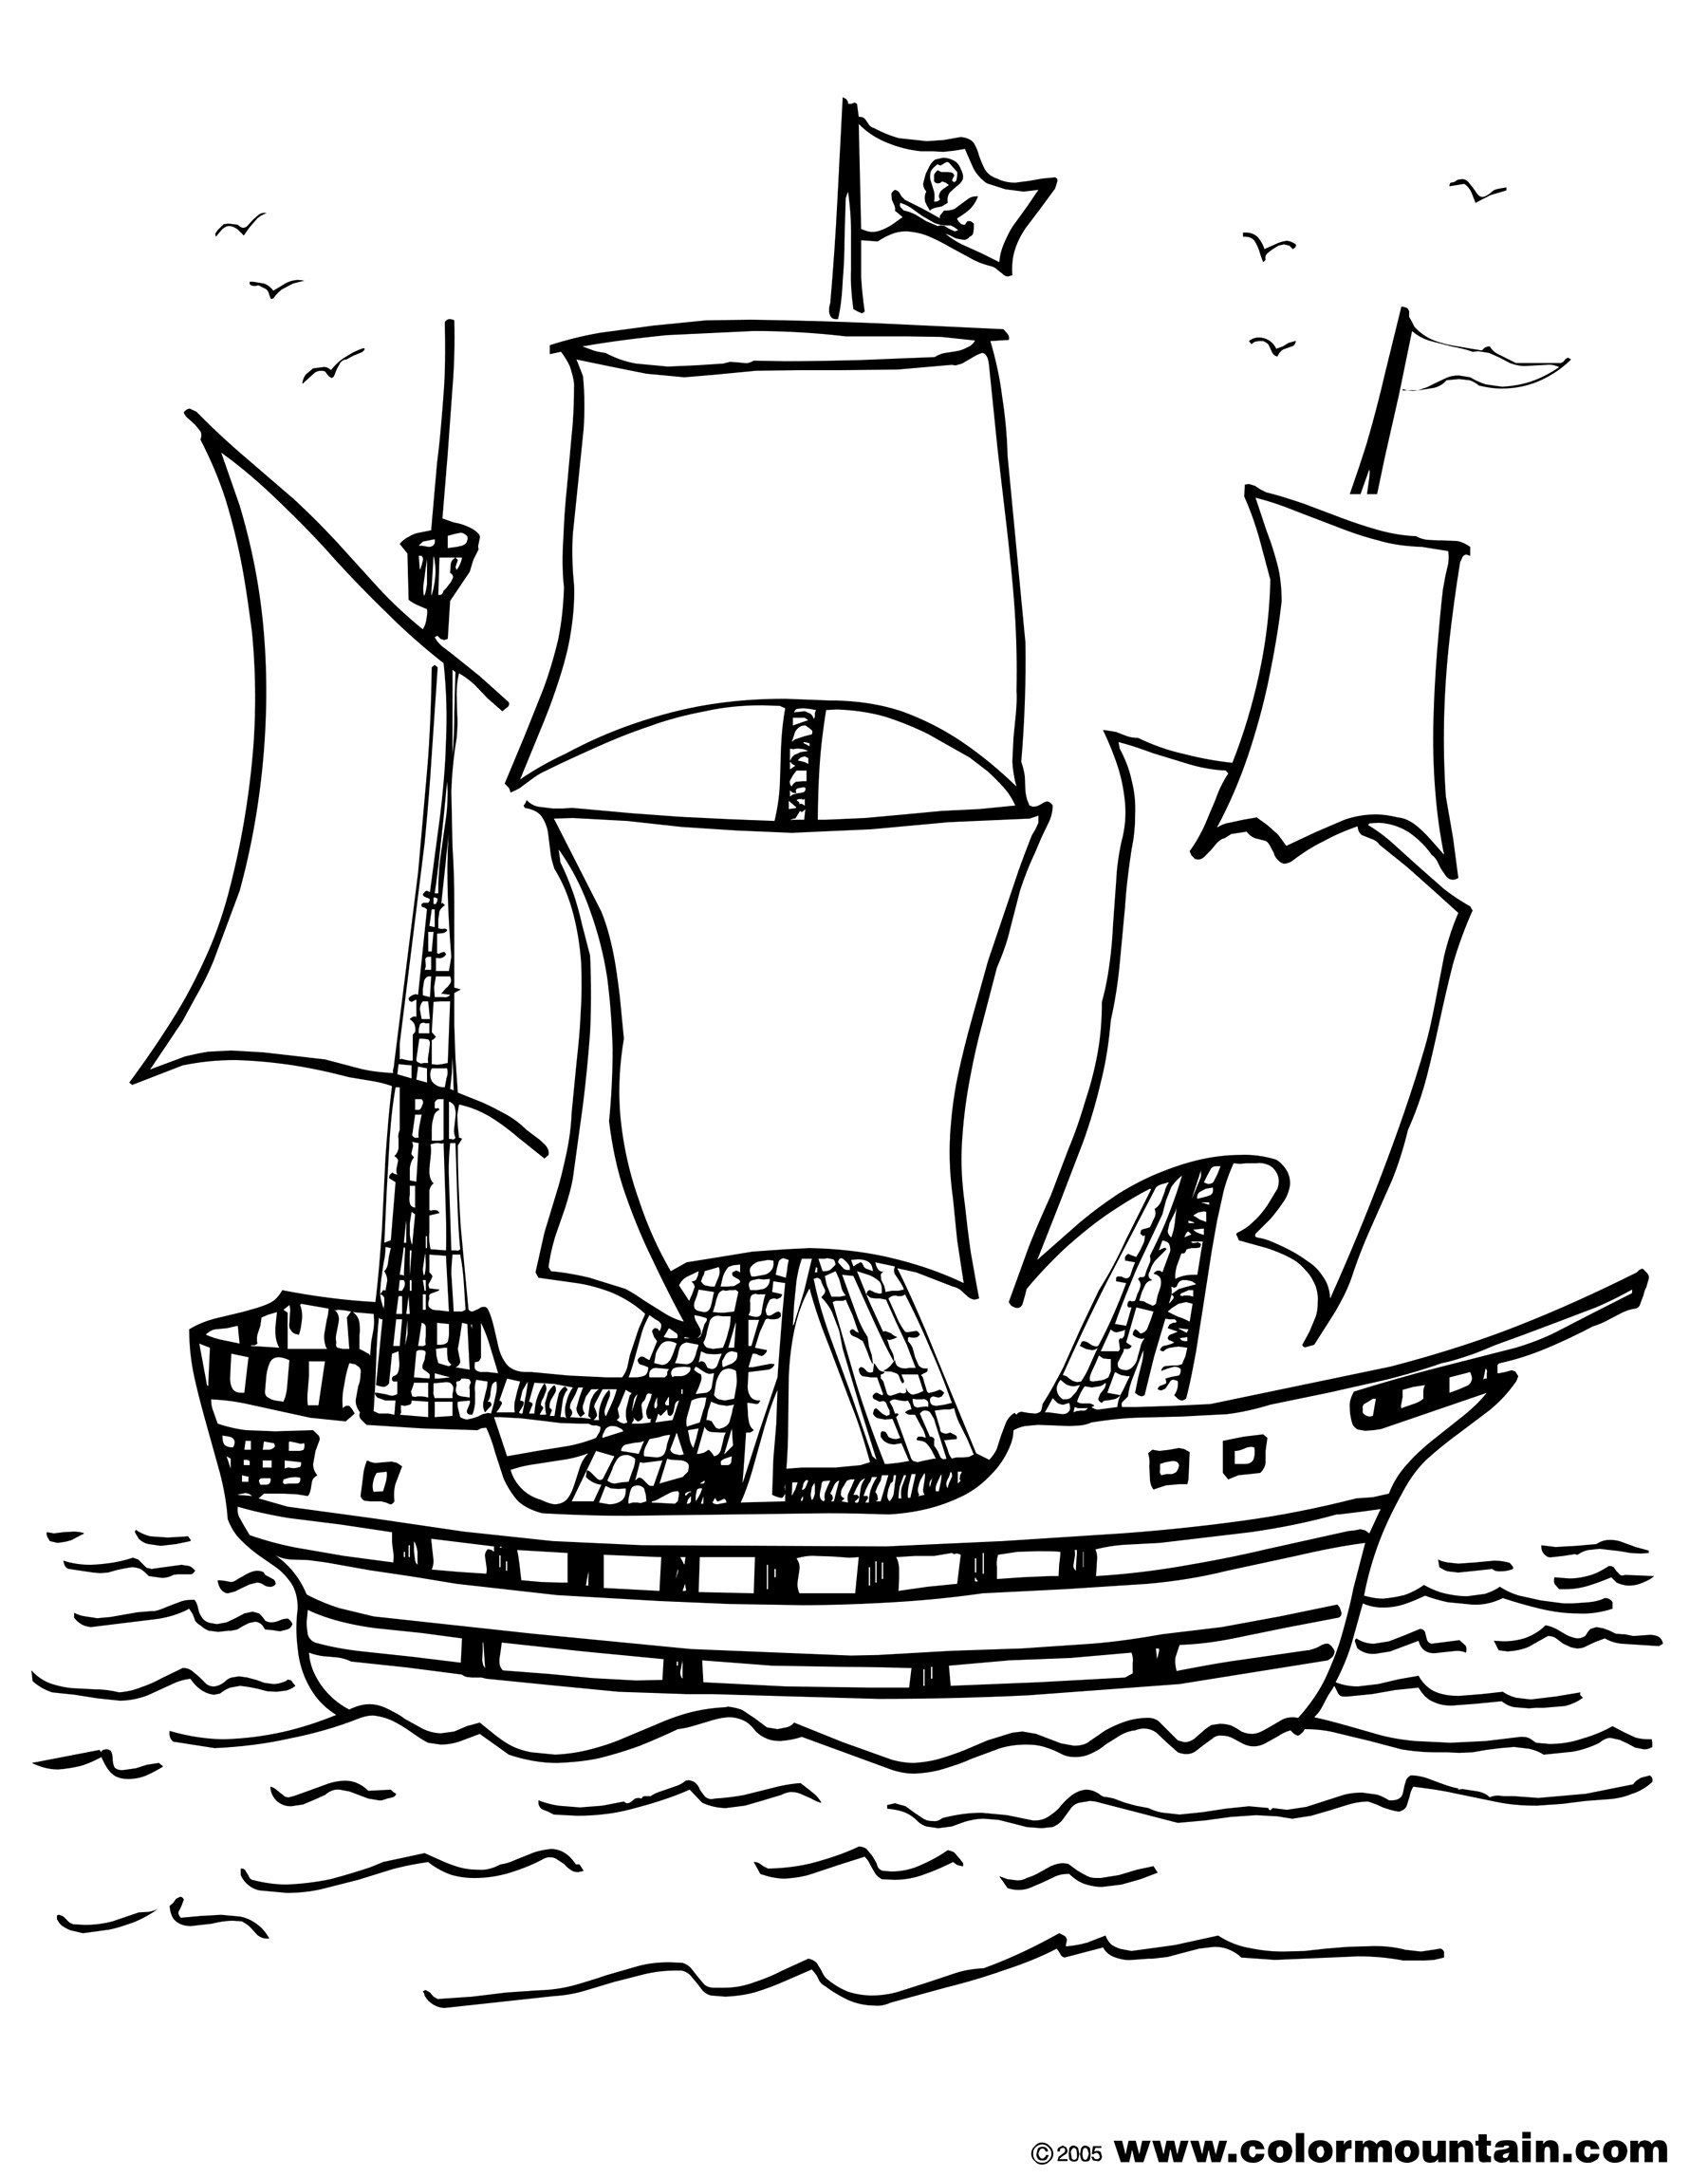 colour in pirate ship pirate ship coloring pages to download and print for free pirate colour ship in